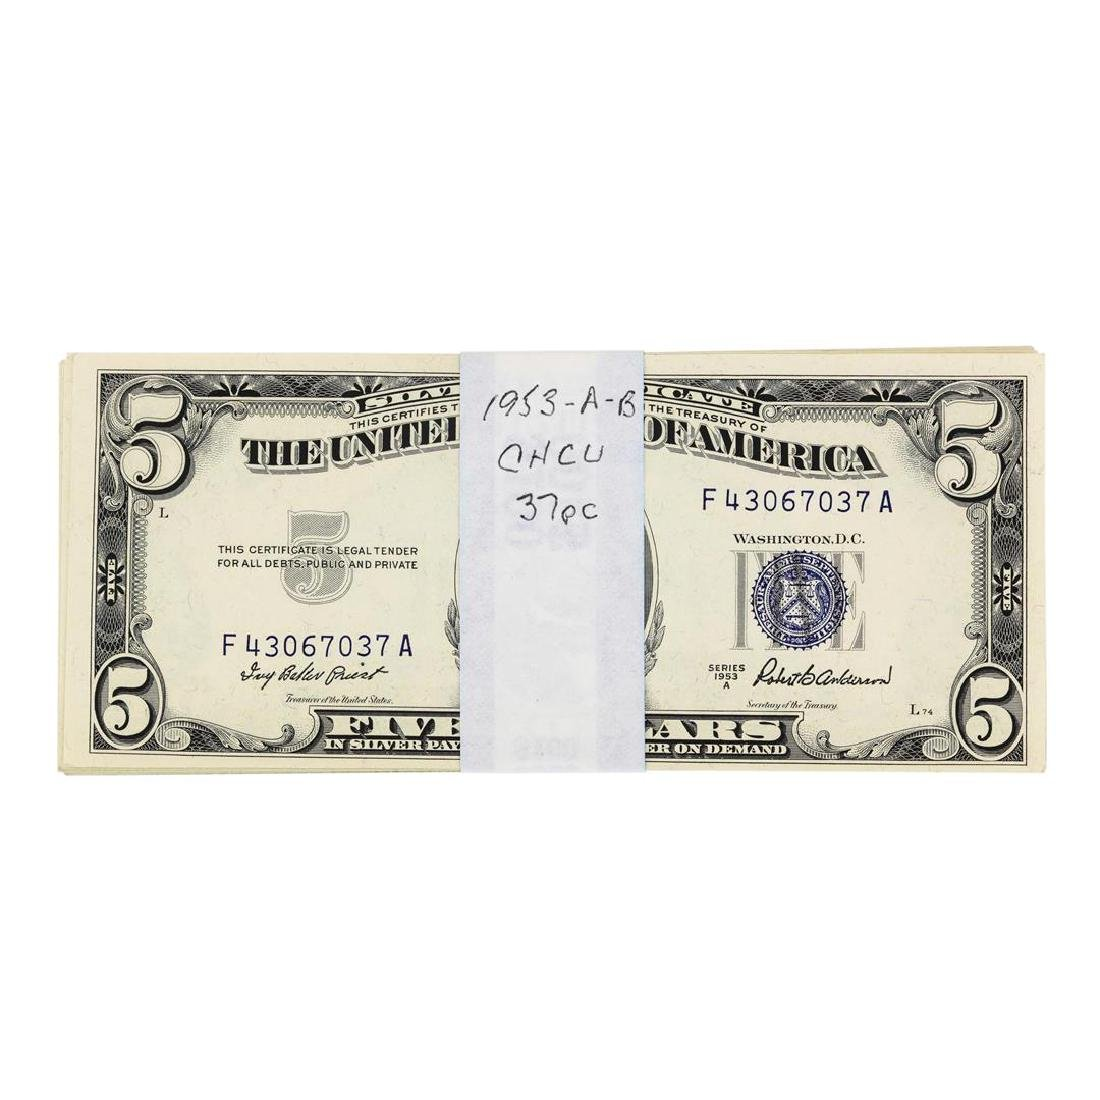 Lot of (37) 1953A/B $5 Silver Certificate Notes